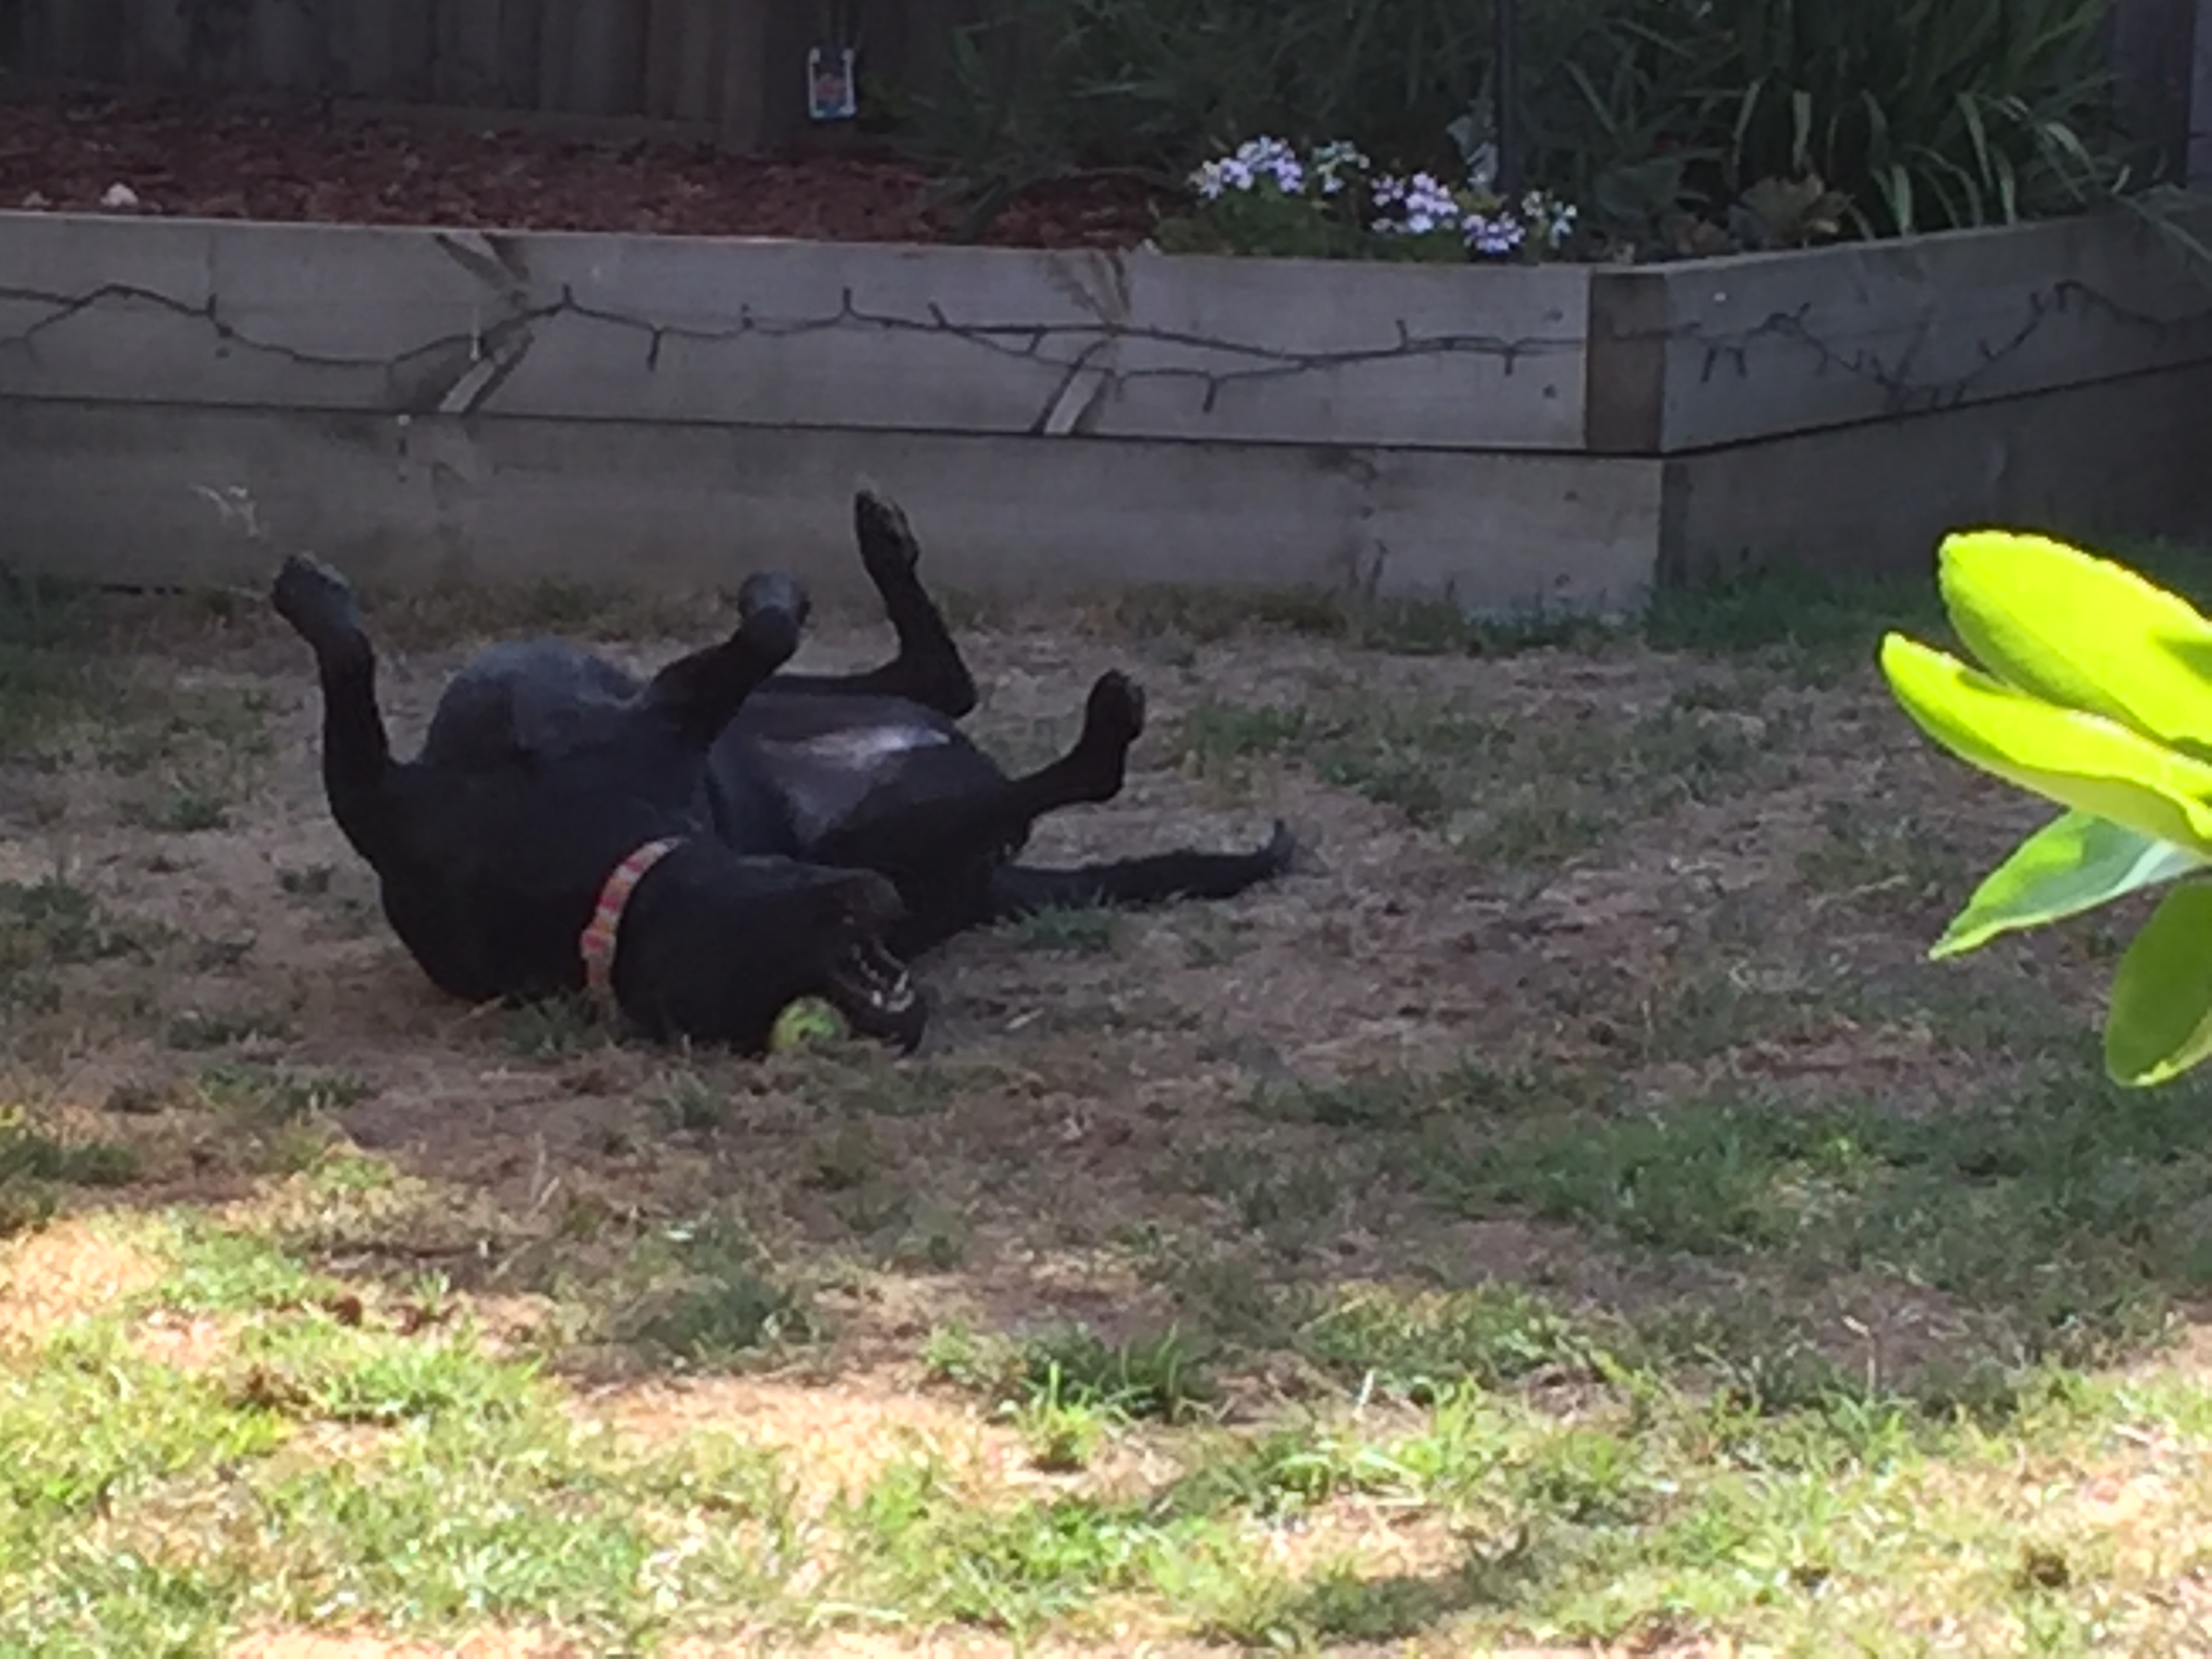 Playtime in the backyard